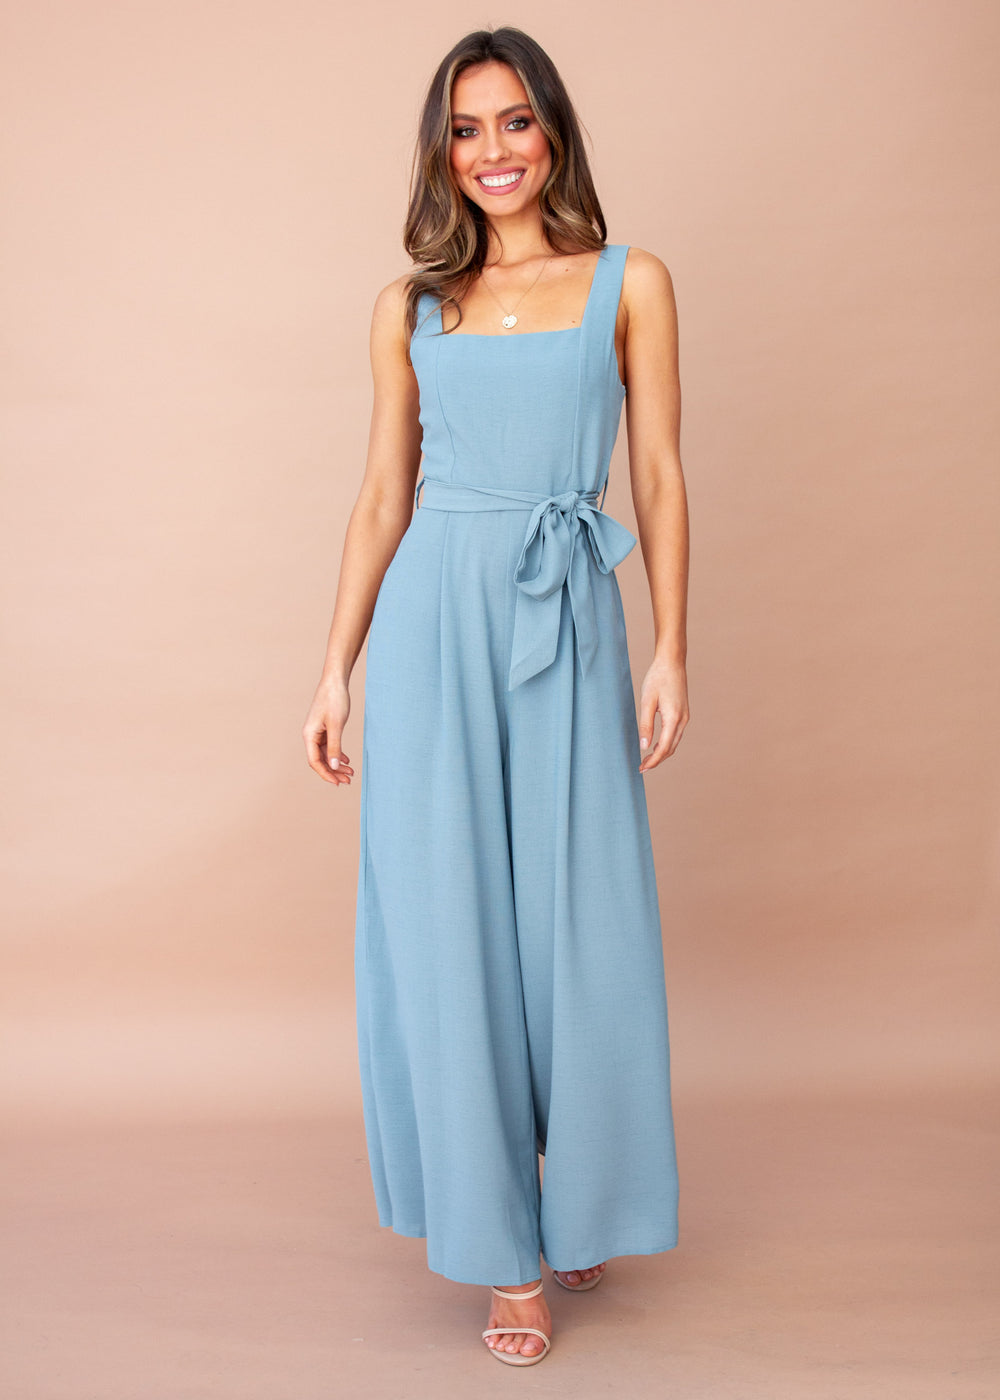 Ibiza Pantsuit - Powder Blue